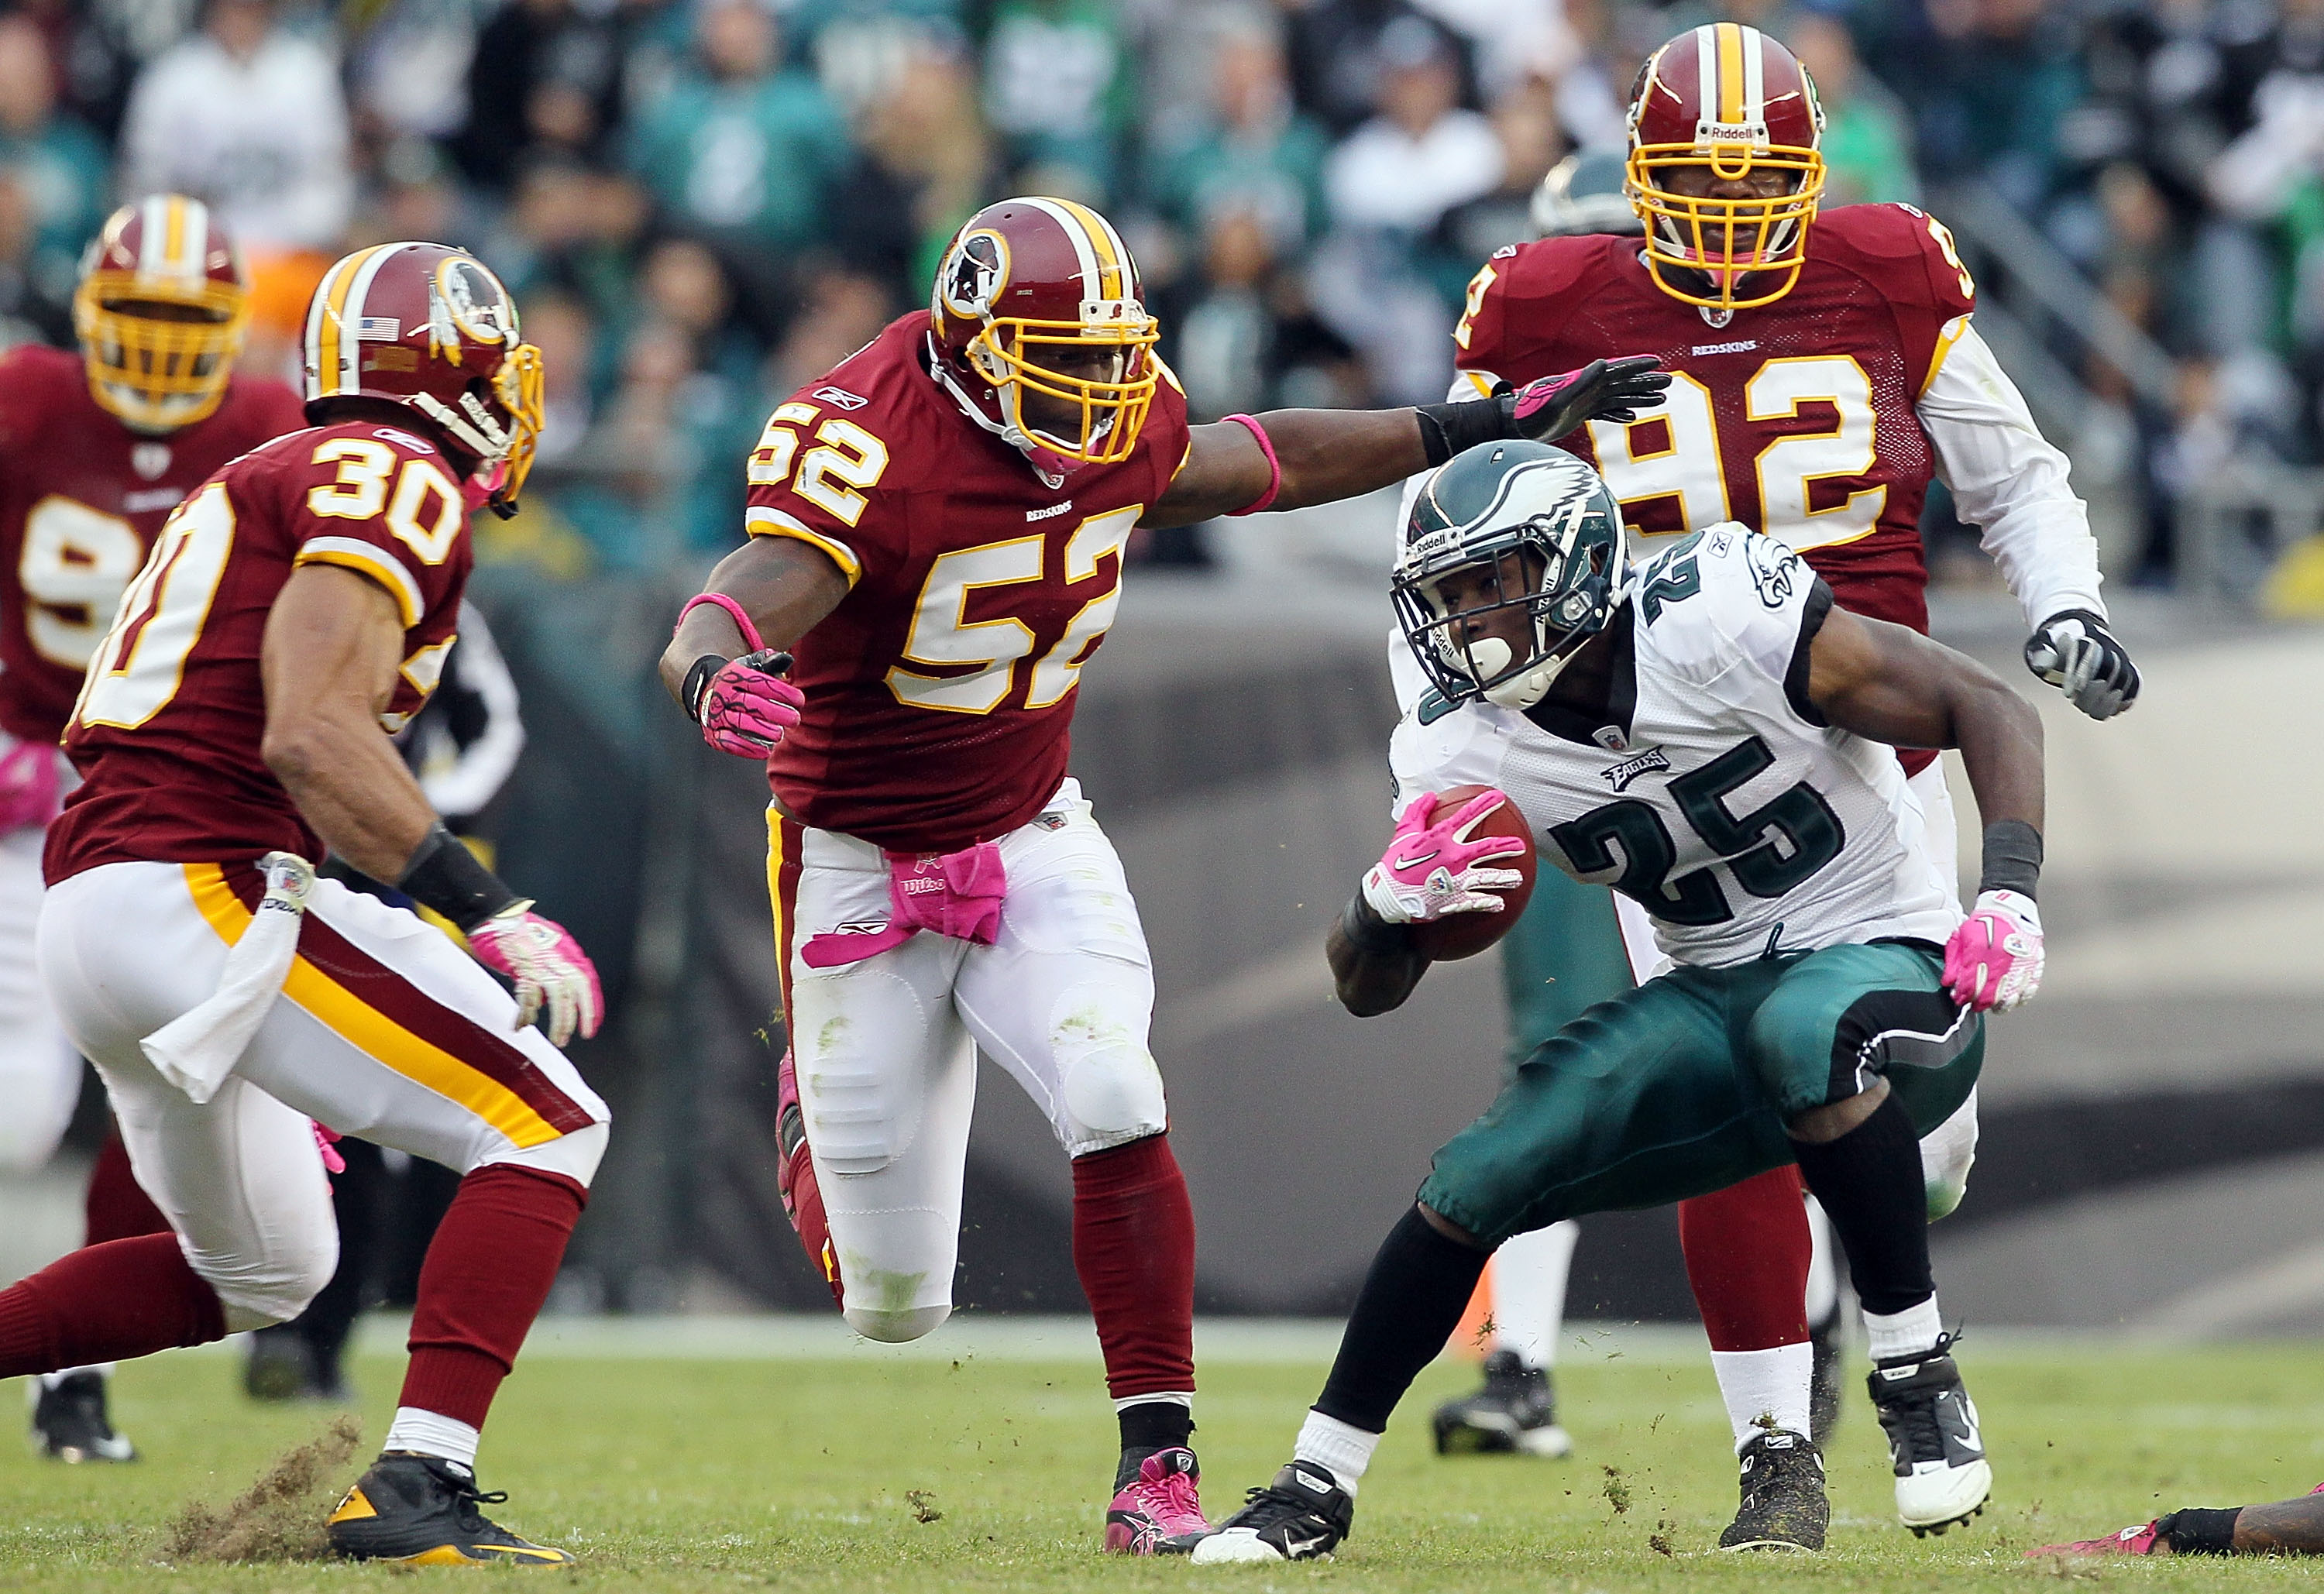 The Eagles and Redskins meet in Washington Sunday, the Skins won the first meeting between the teams